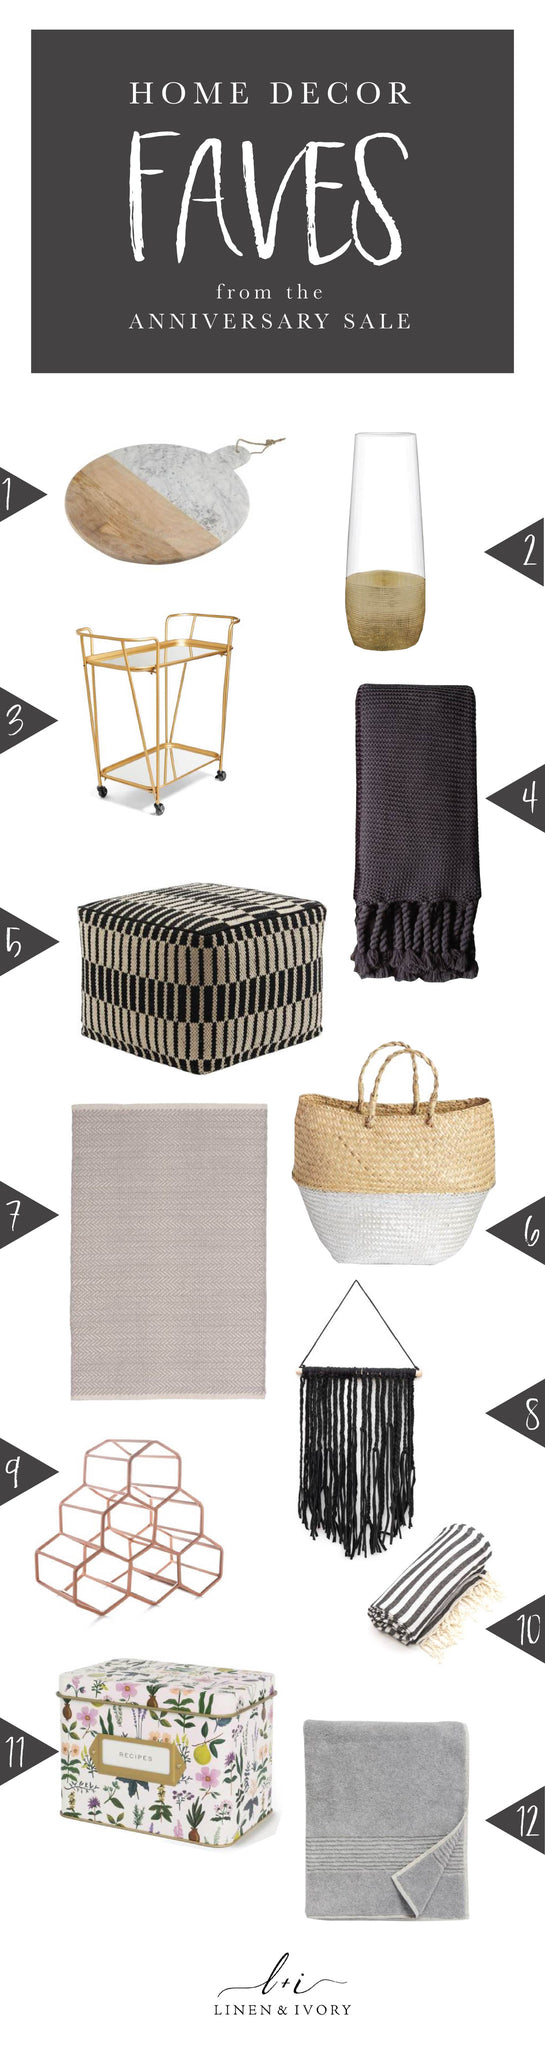 Home decor faves from the nordstrom anniversary sale Nordstrom home decor sale